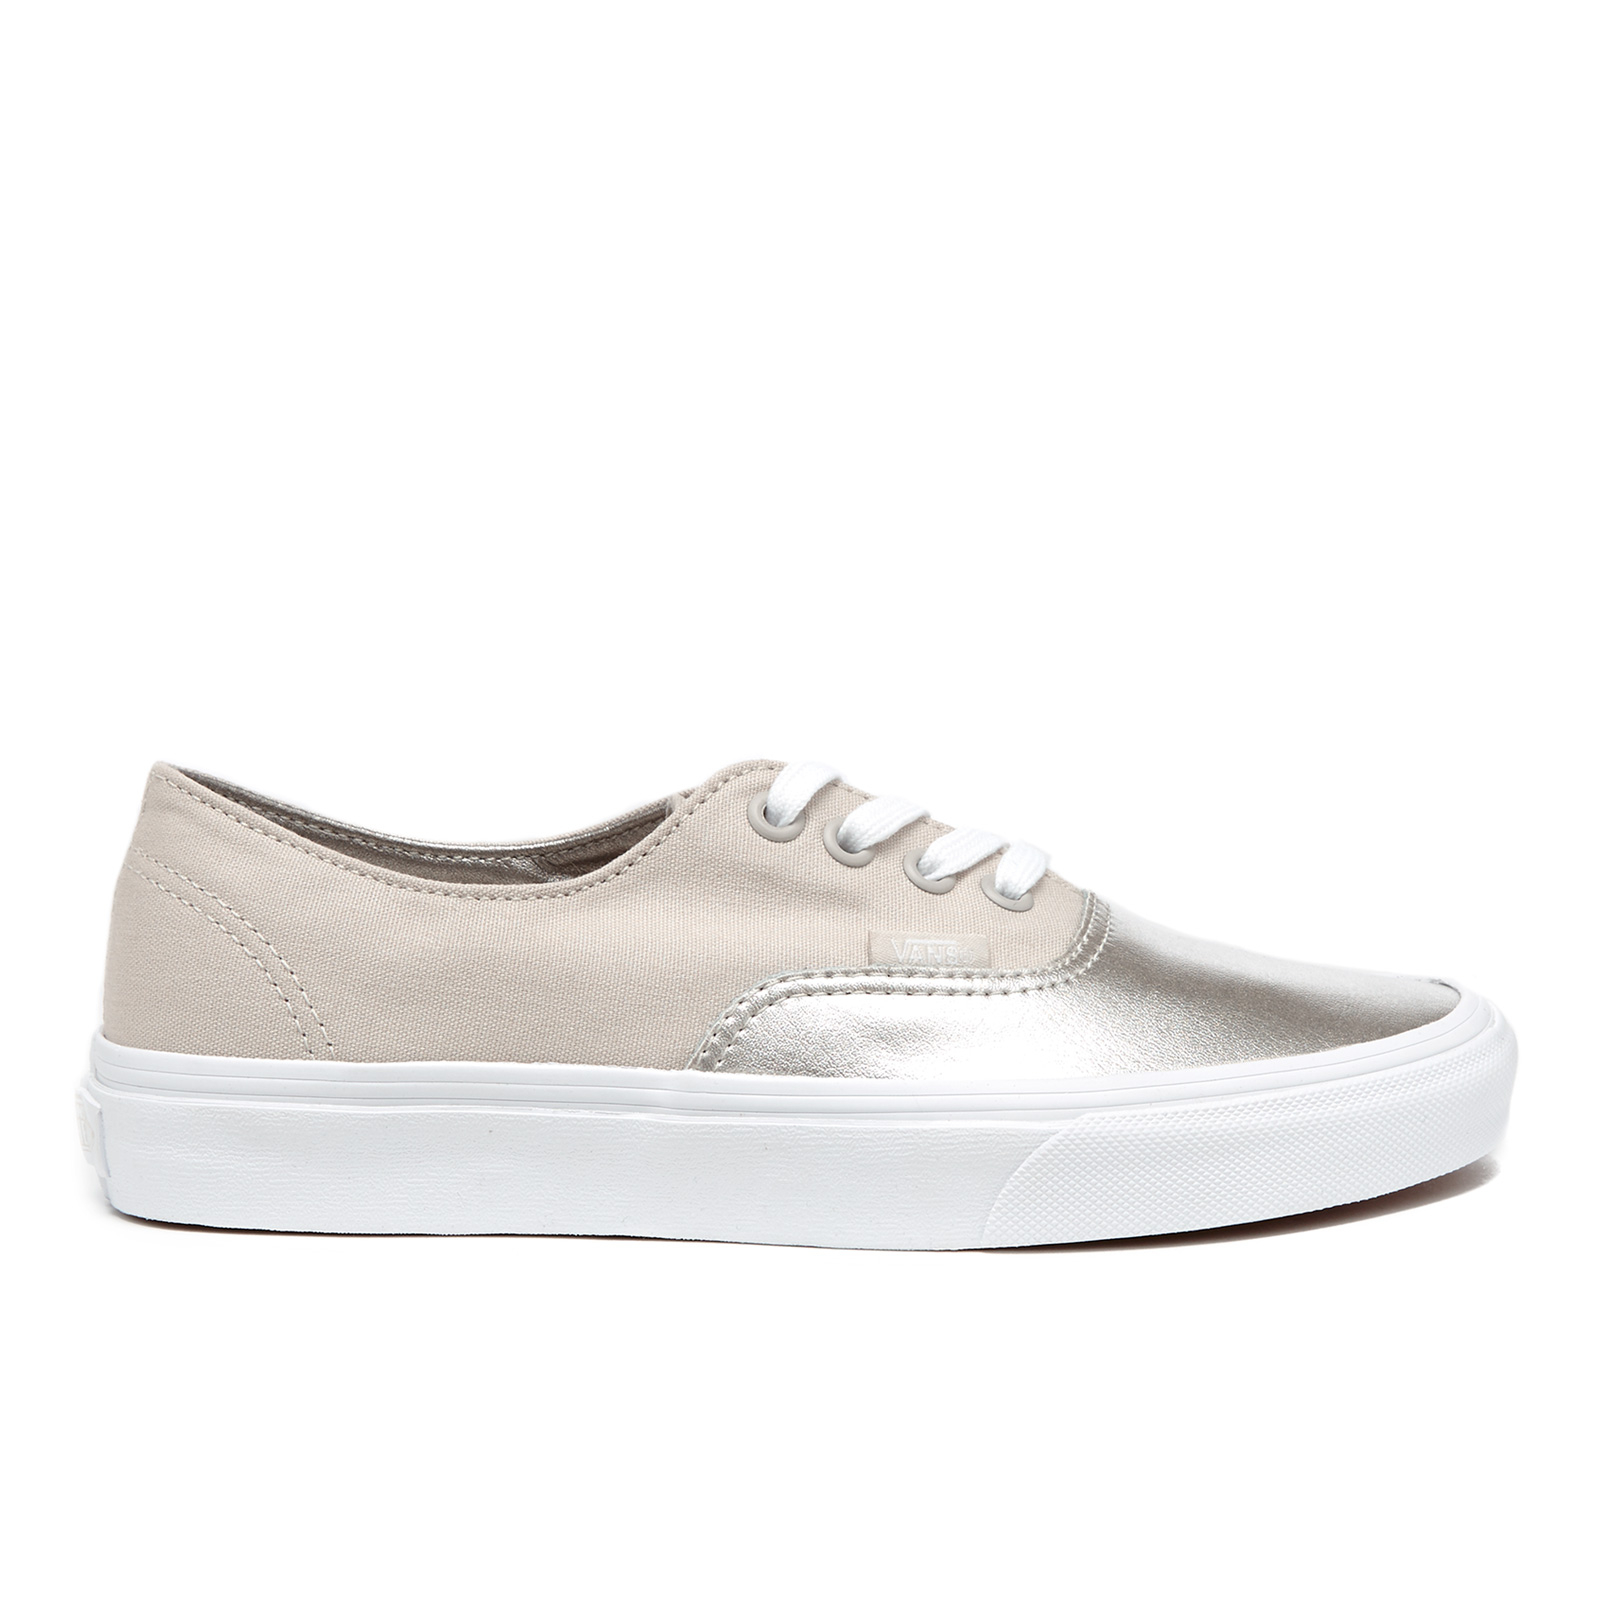 13a3b76d9c Vans Women s Authentic Decon Metallic Canvas Trainers - Silver - Free UK  Delivery over £50